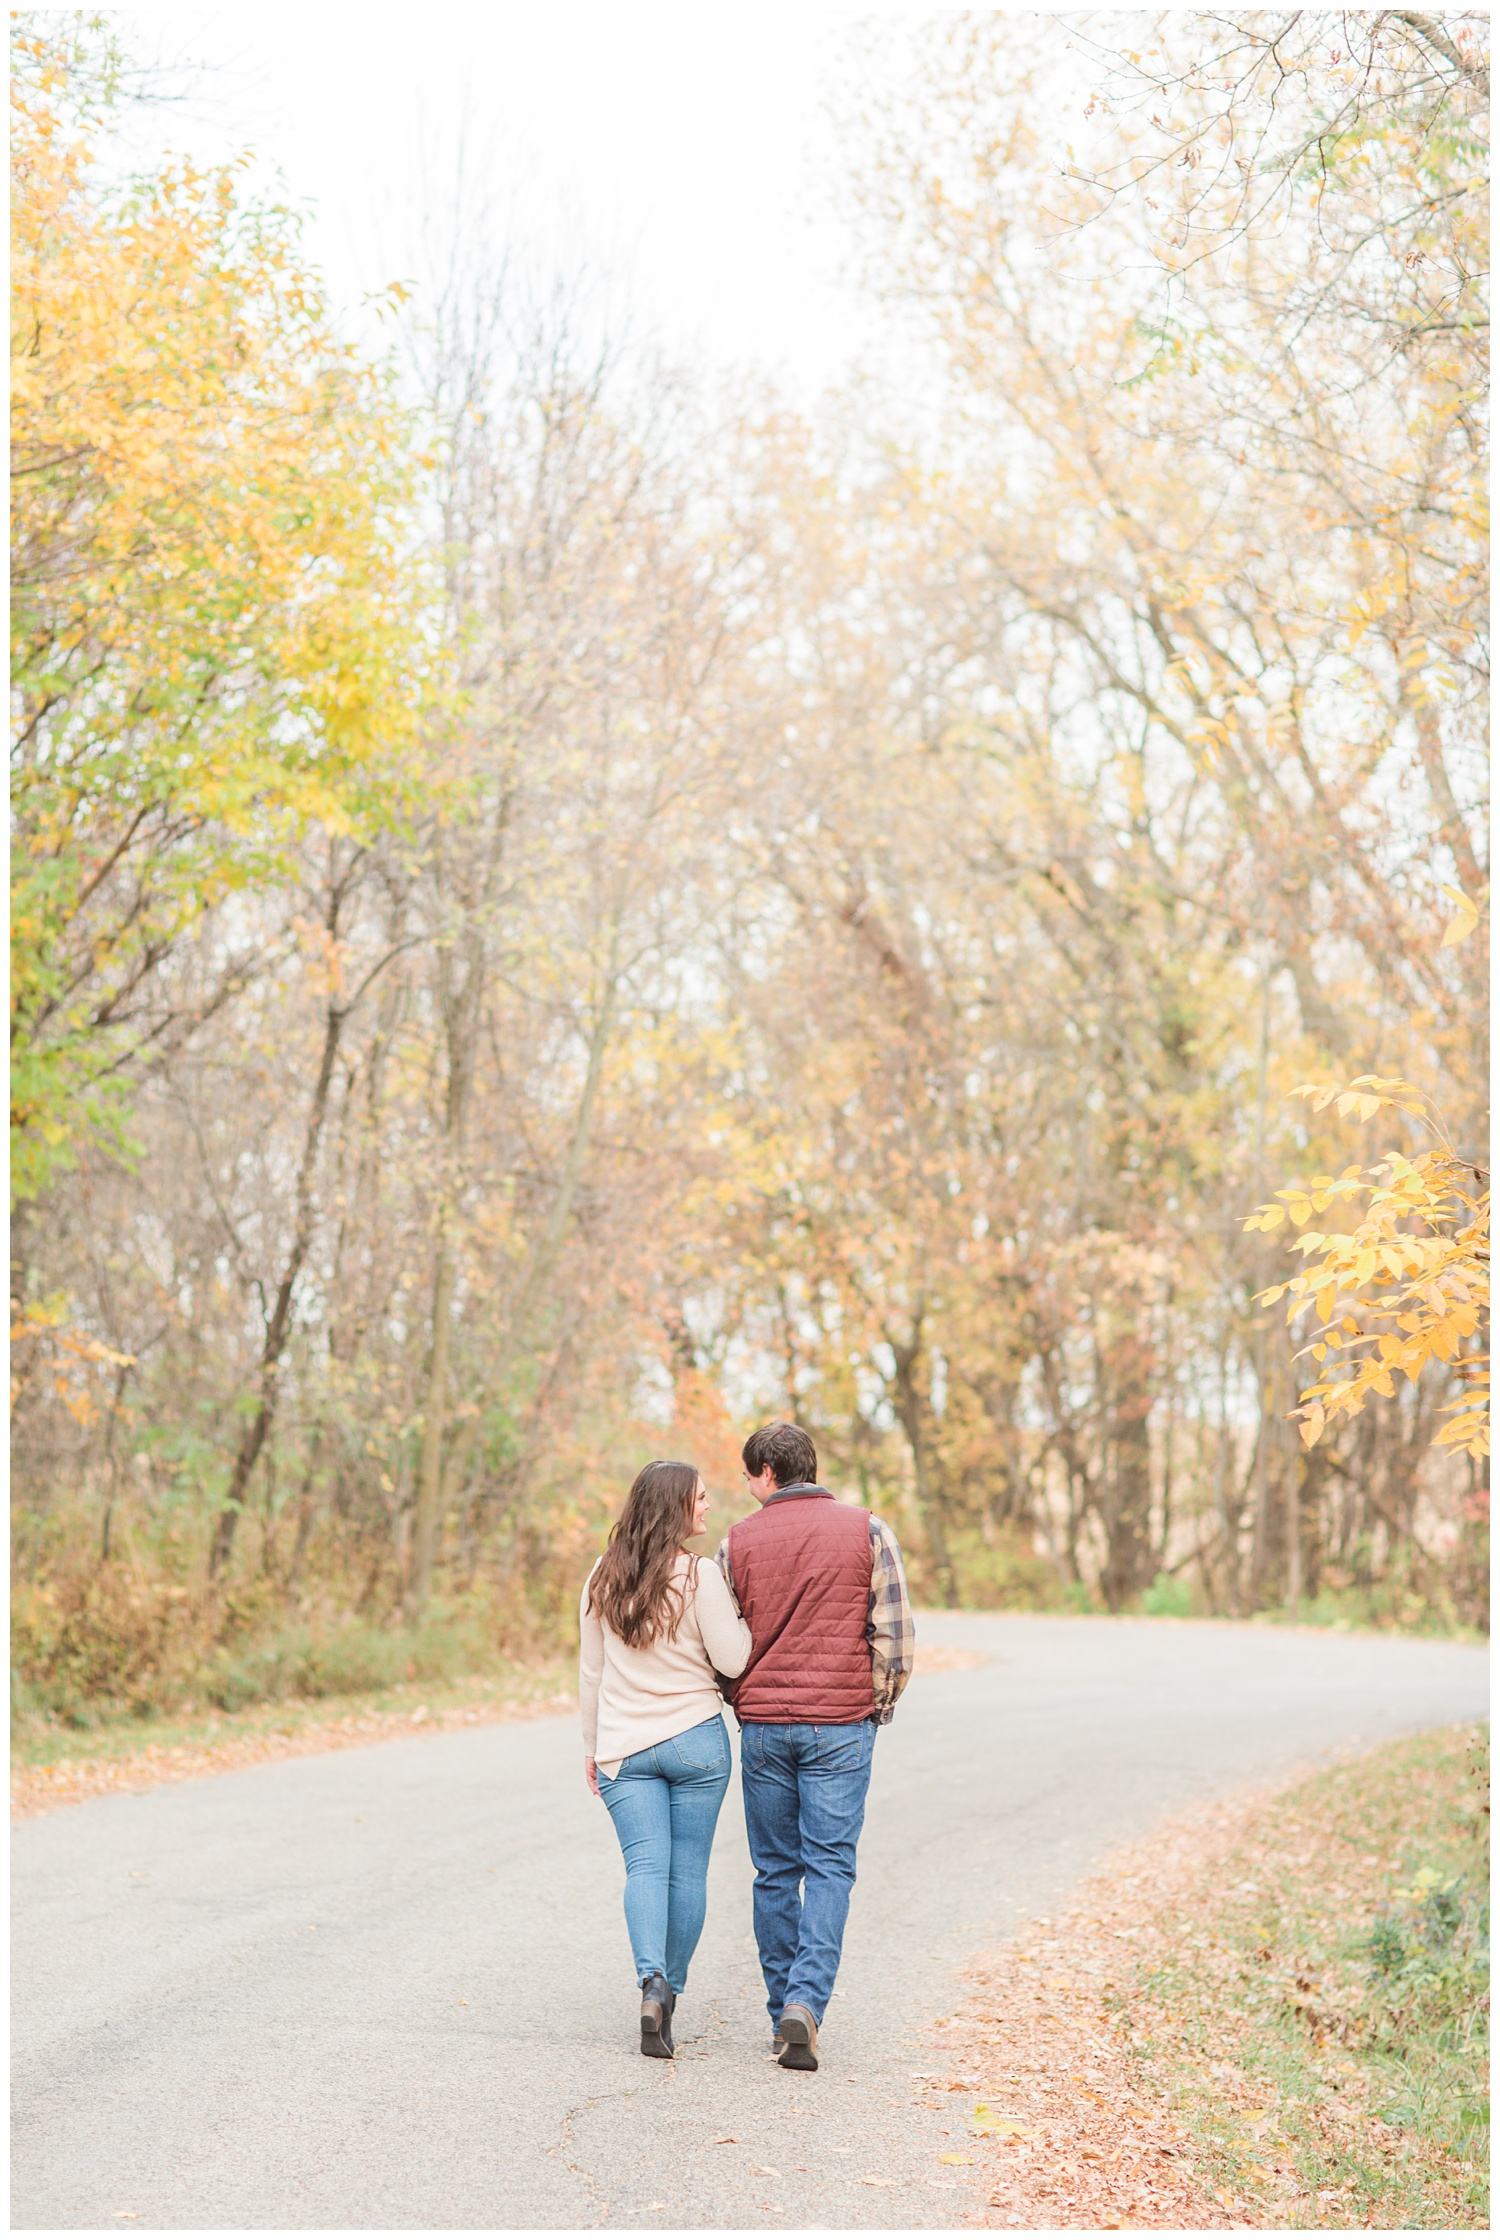 Fall in Iowa, Jenna and Brady link arms as they walk along an autumn path at Lost Island Nature Center | CB Studio